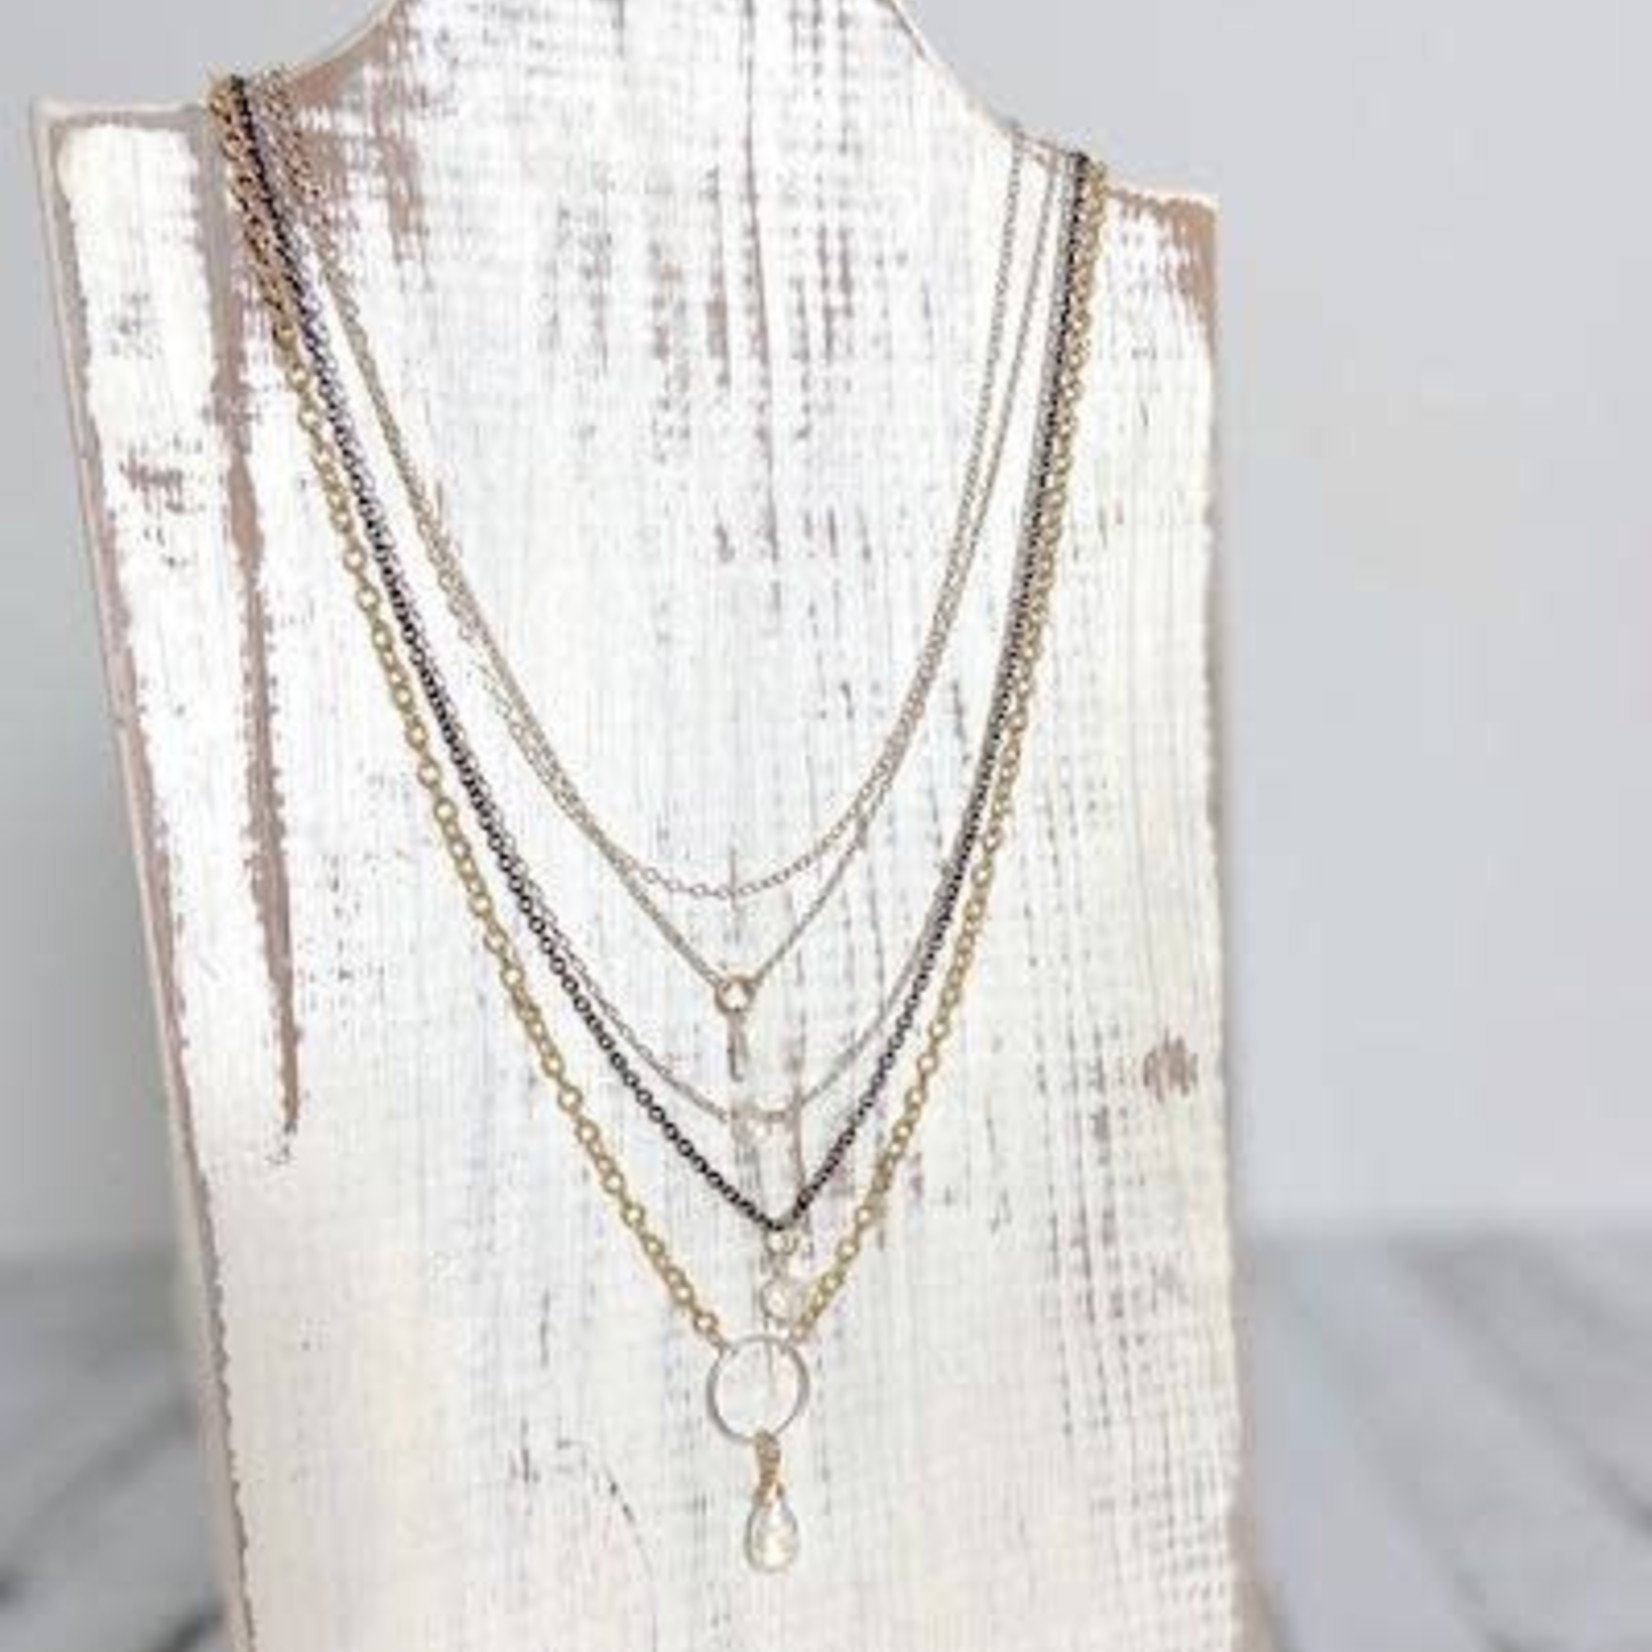 Handmade Multi-strand Necklace with shiny sterling silver, oxidized sterling silver and 14k goldfill chains with rainbow moonstones.